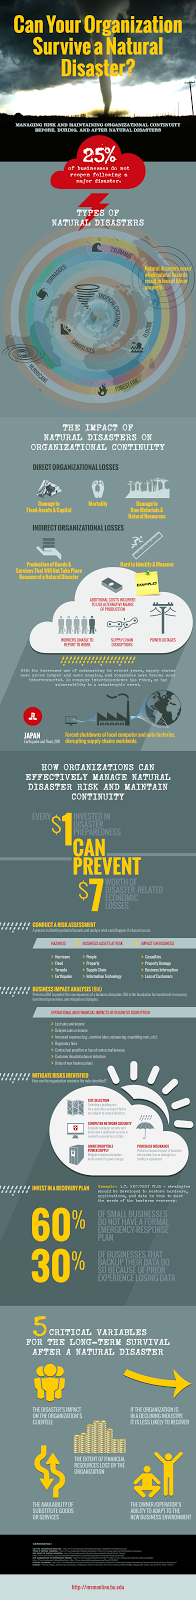 CAN YOUR ORGANIZATION SURVIVE A NATURAL DISASTER?